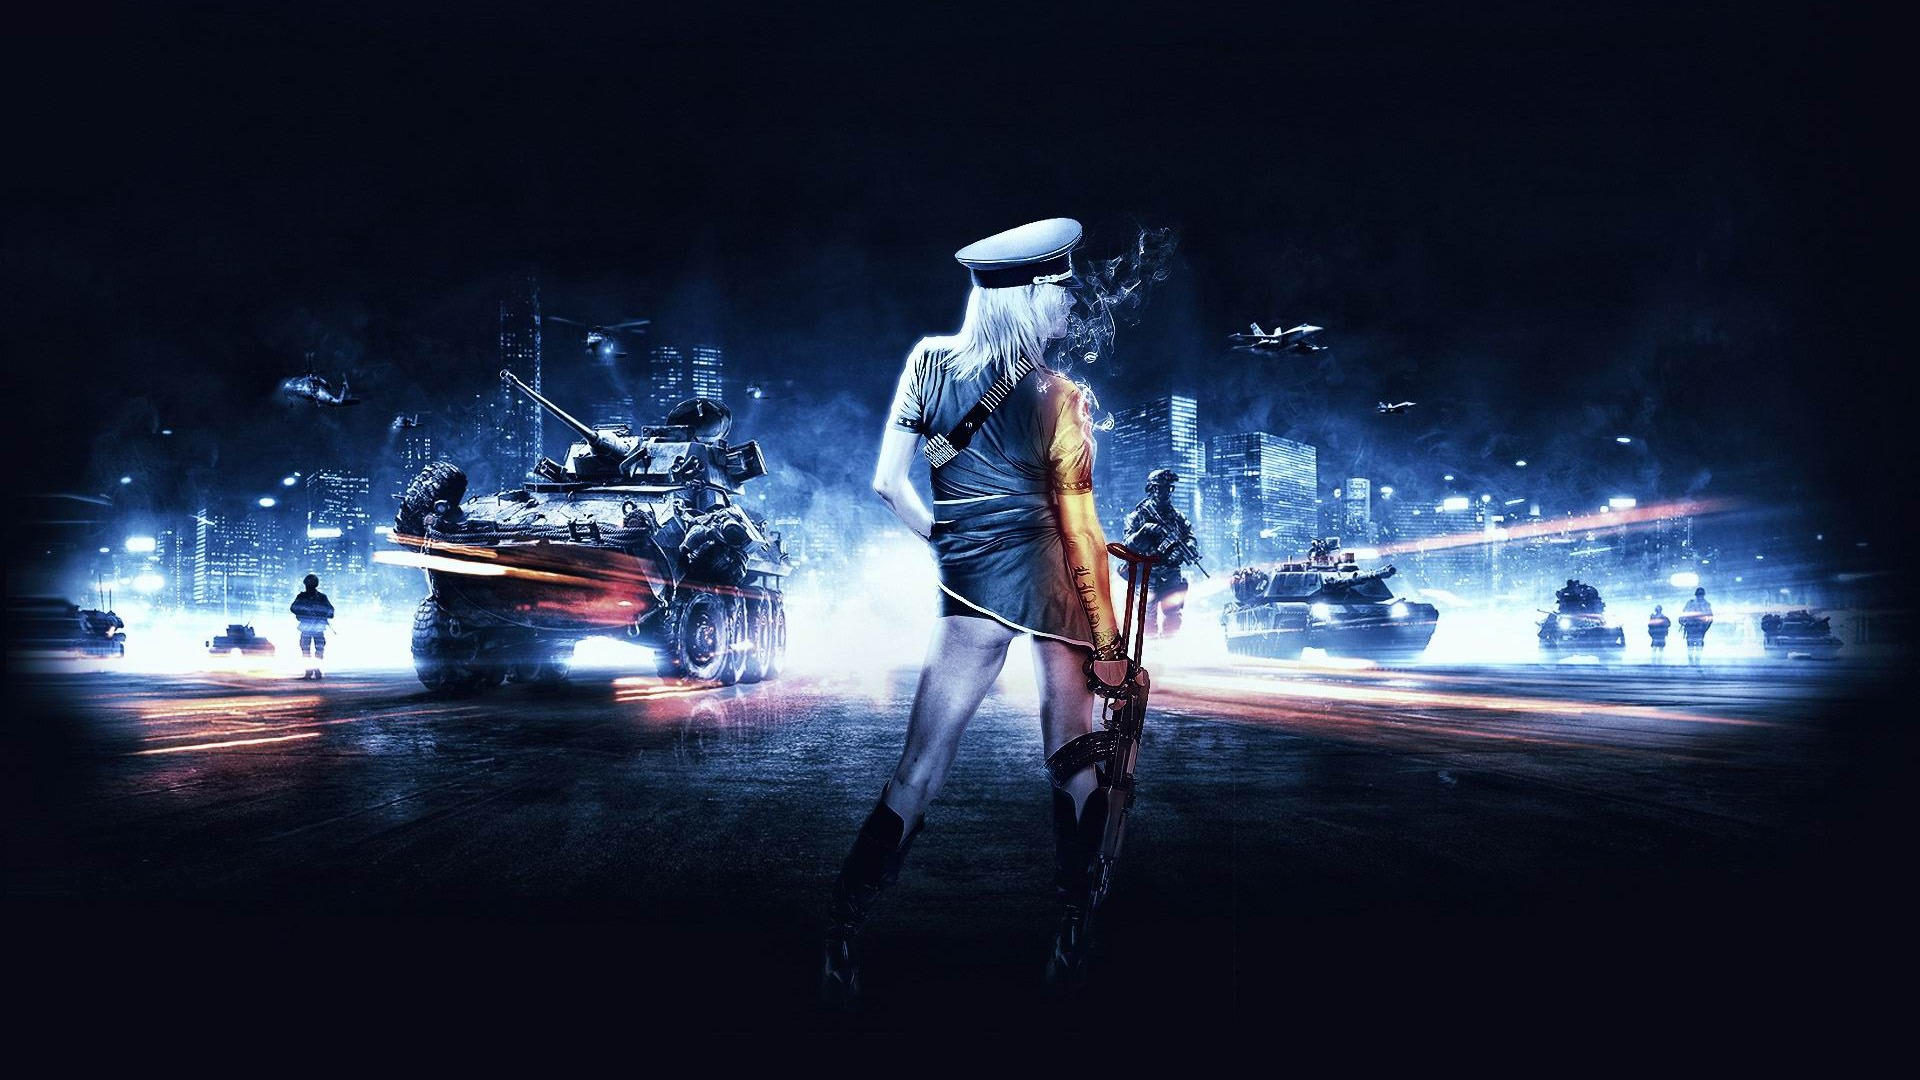 battlefield 3 girl games hd wallpaper preview | 10wallpaper